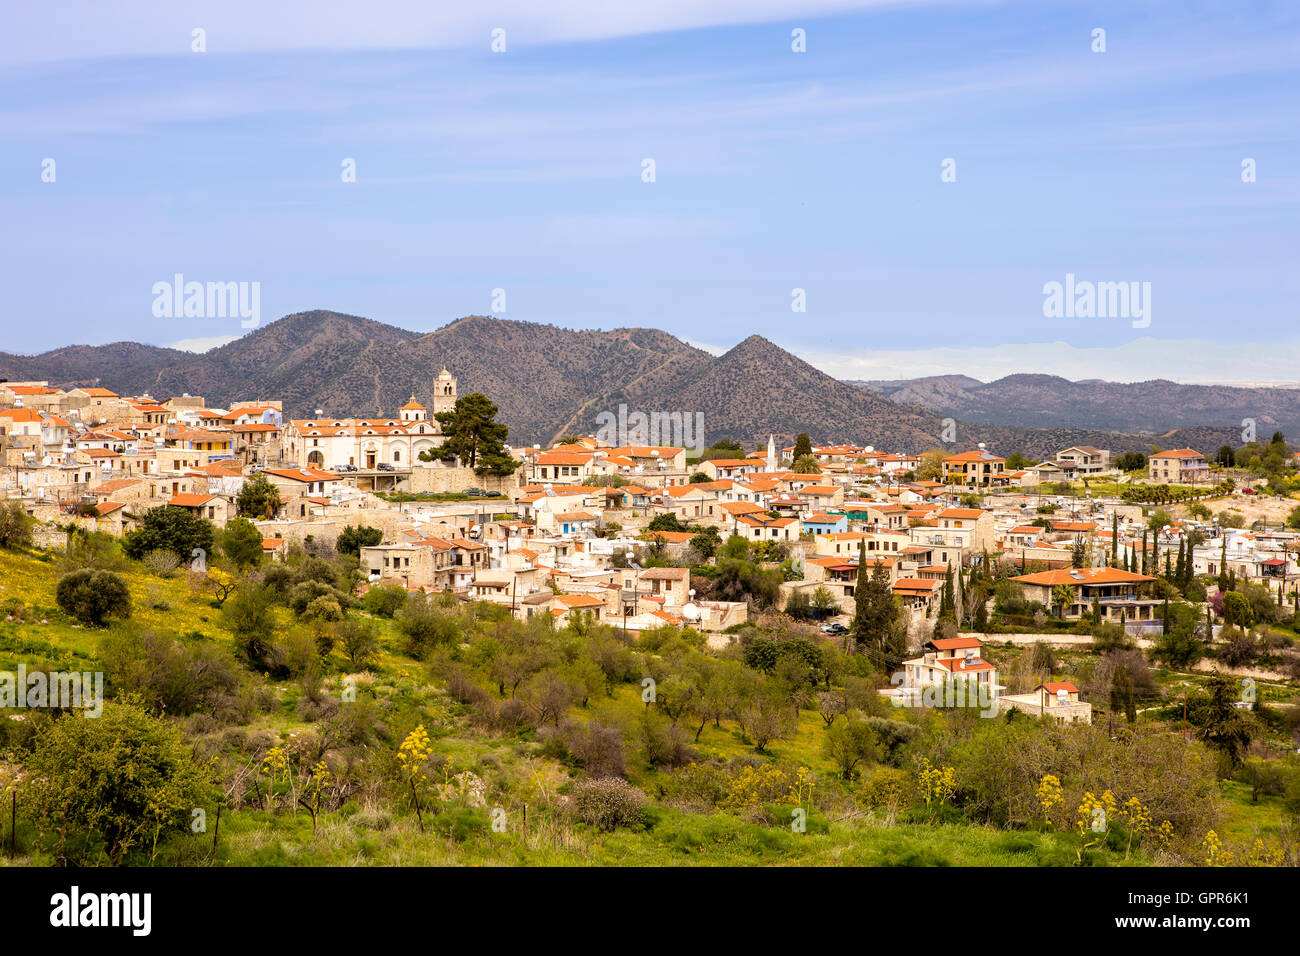 Typical Cyprus village in the Troodos Mountains. - Stock Image